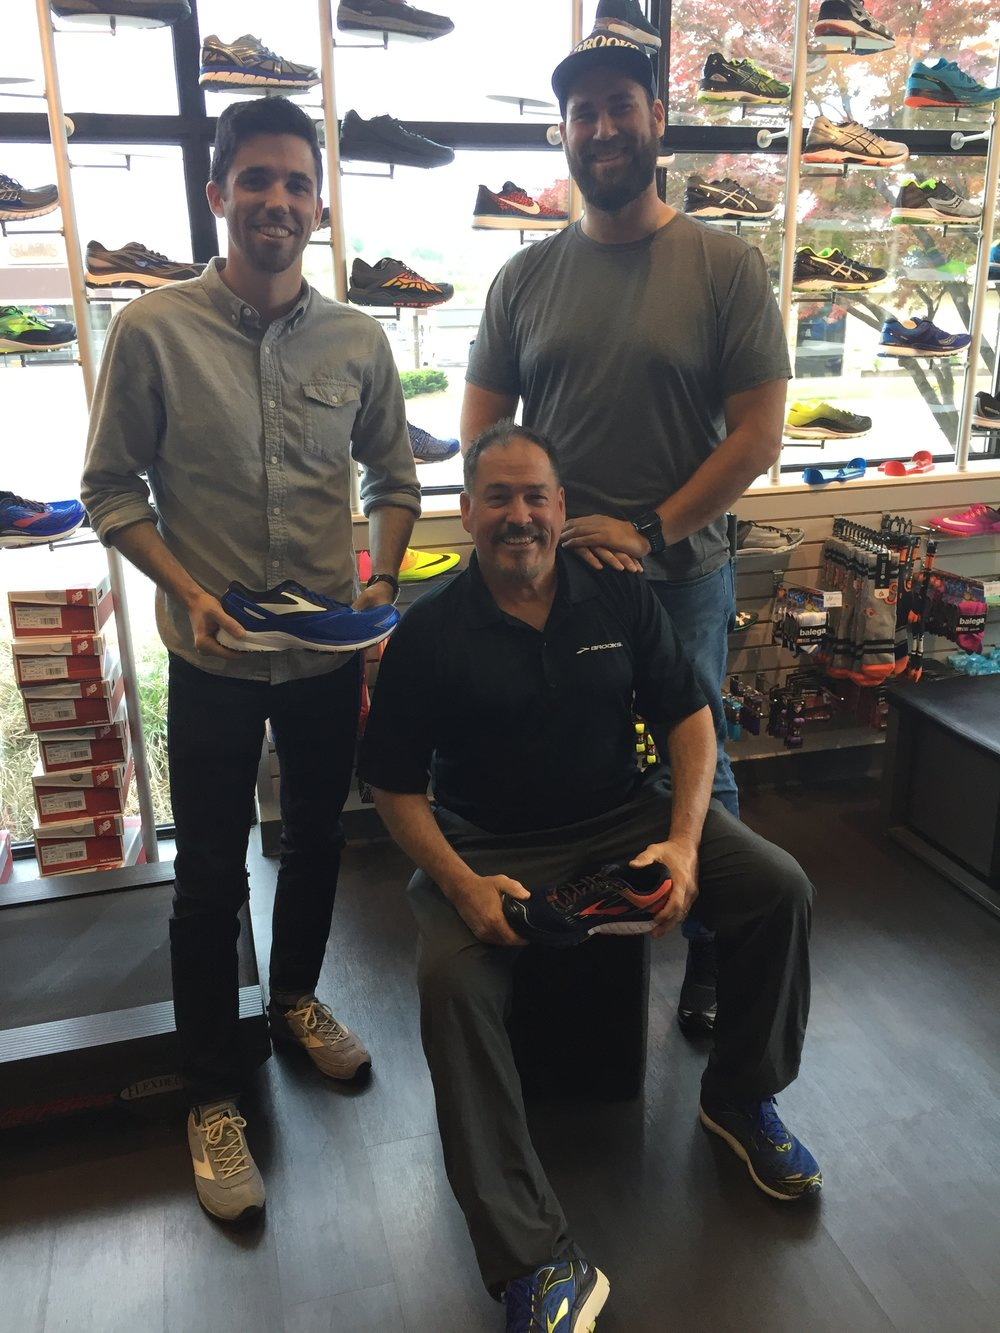 From right to left: Connor, Mike and Brennan with their favorite Brooks shoes!